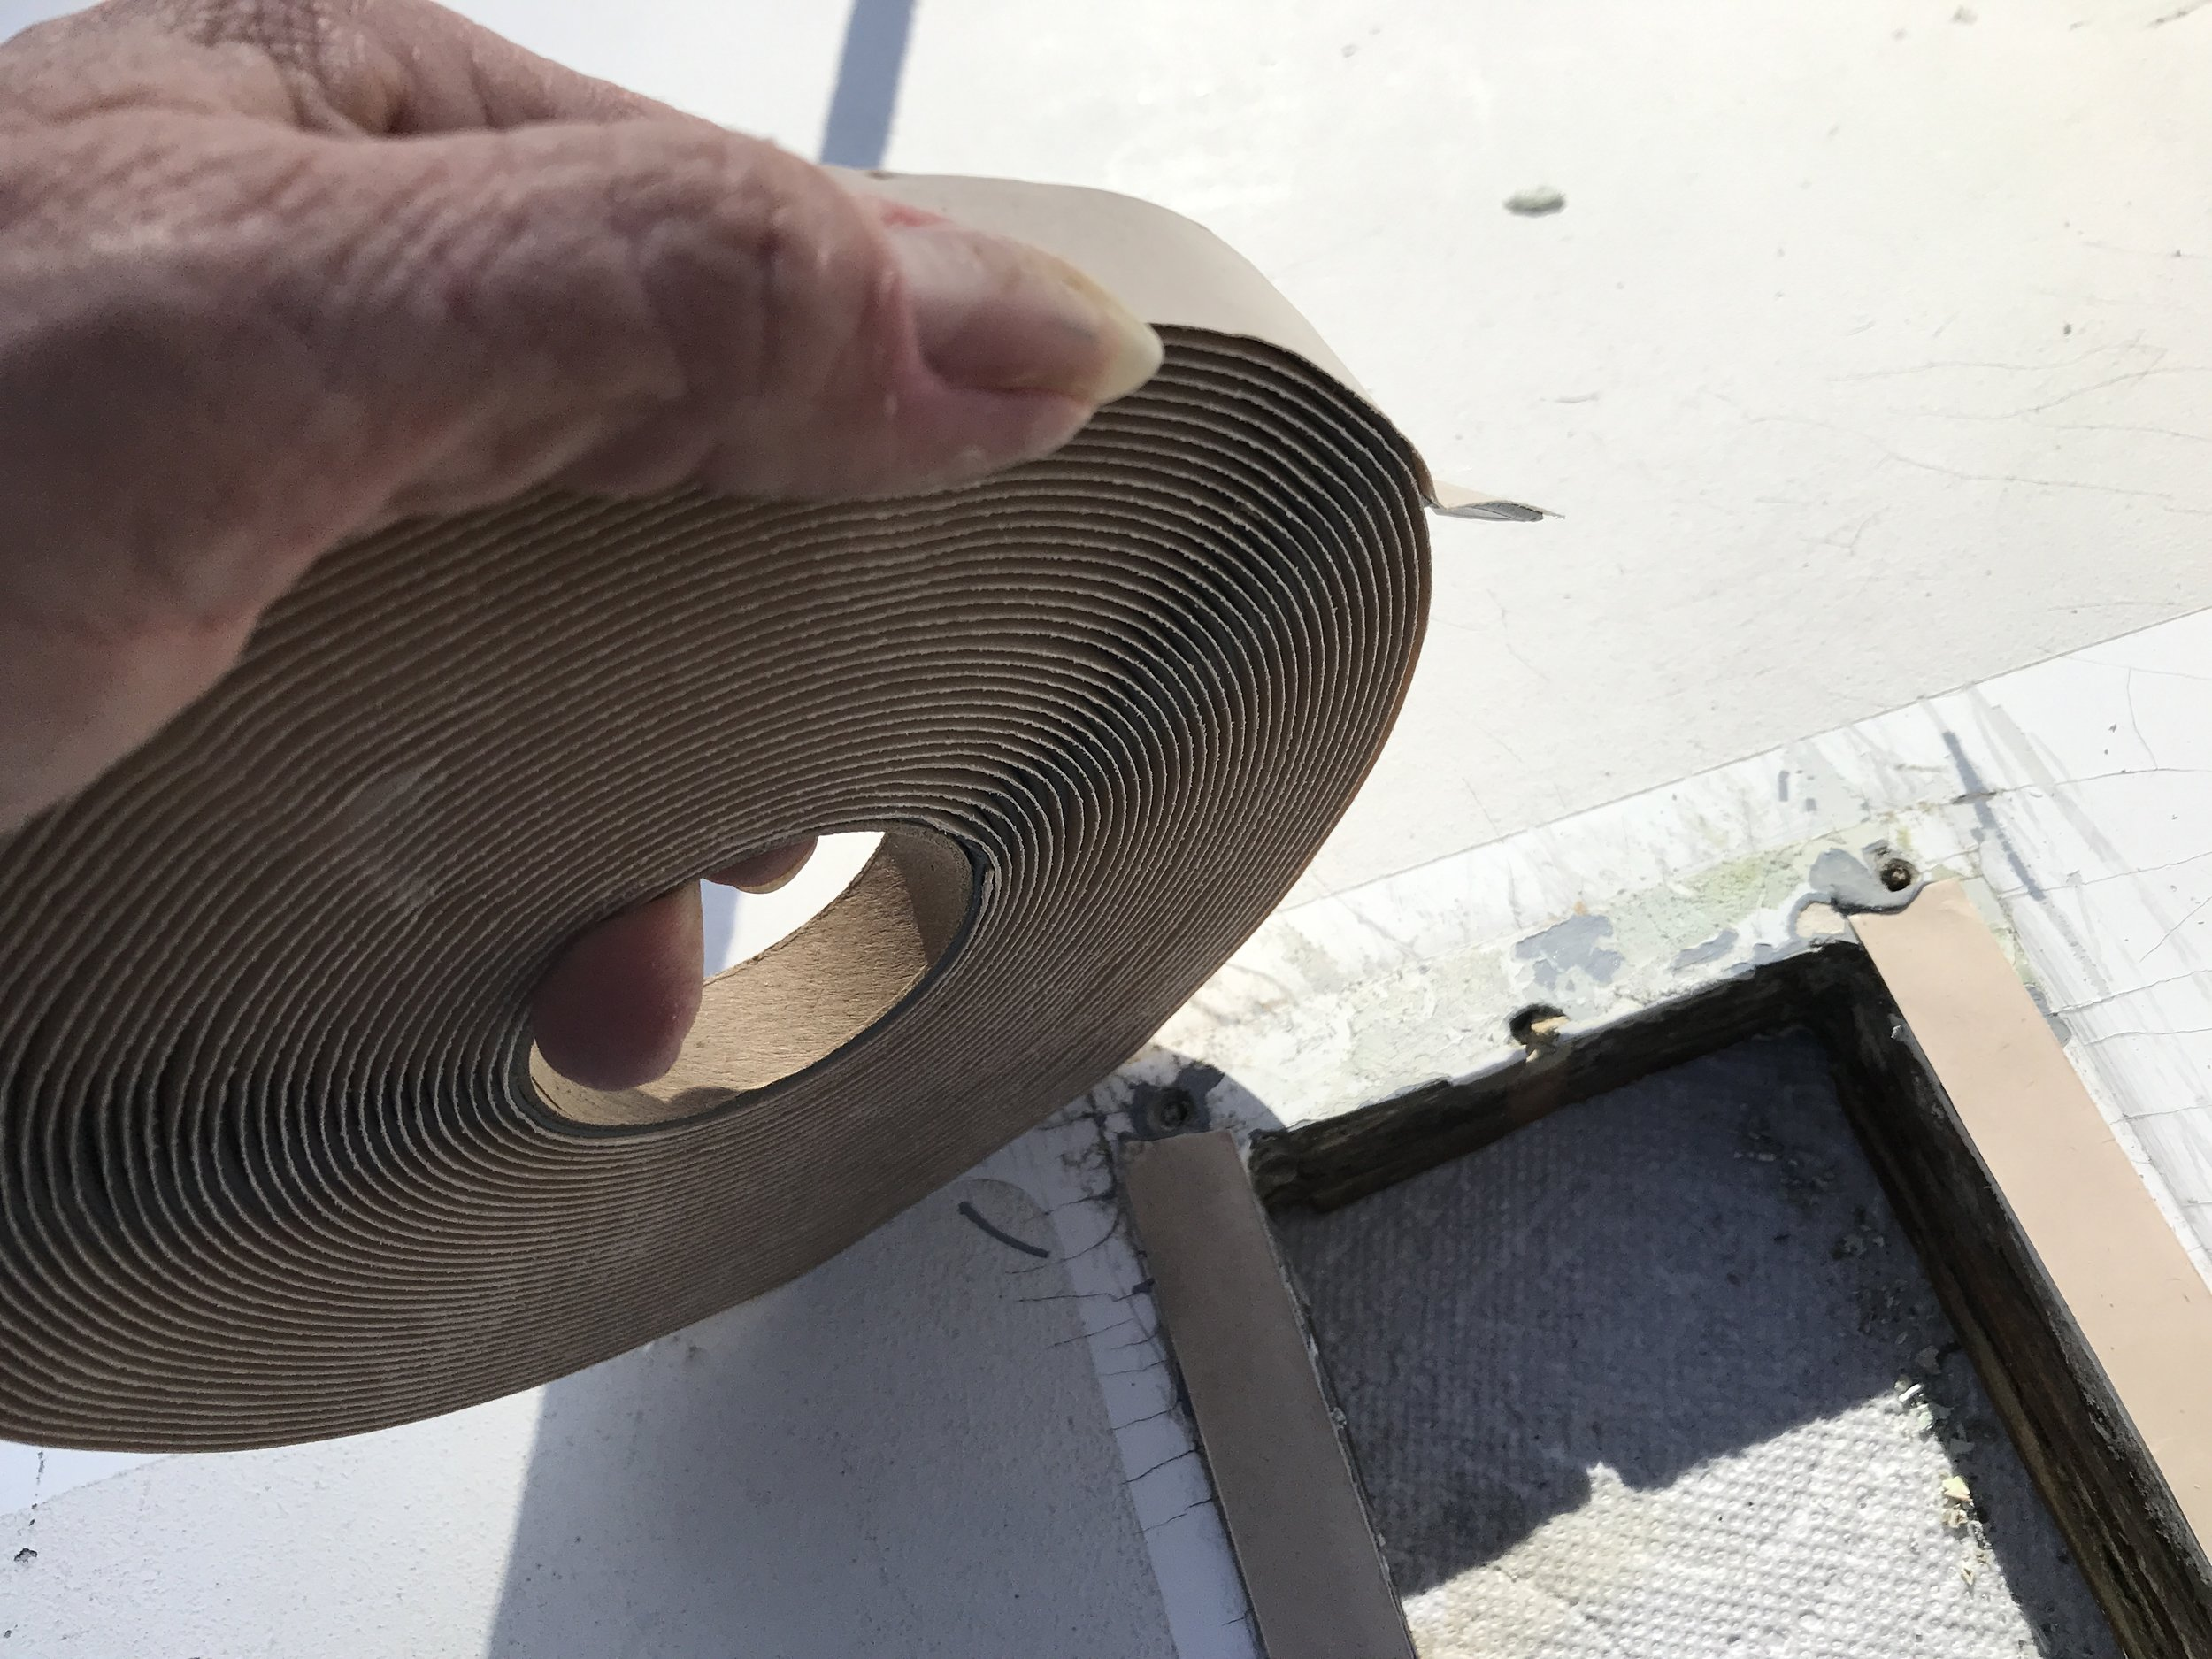 Butyl tape comes in a roll in different widths. This is the 3/4 inch width and it's perfect.